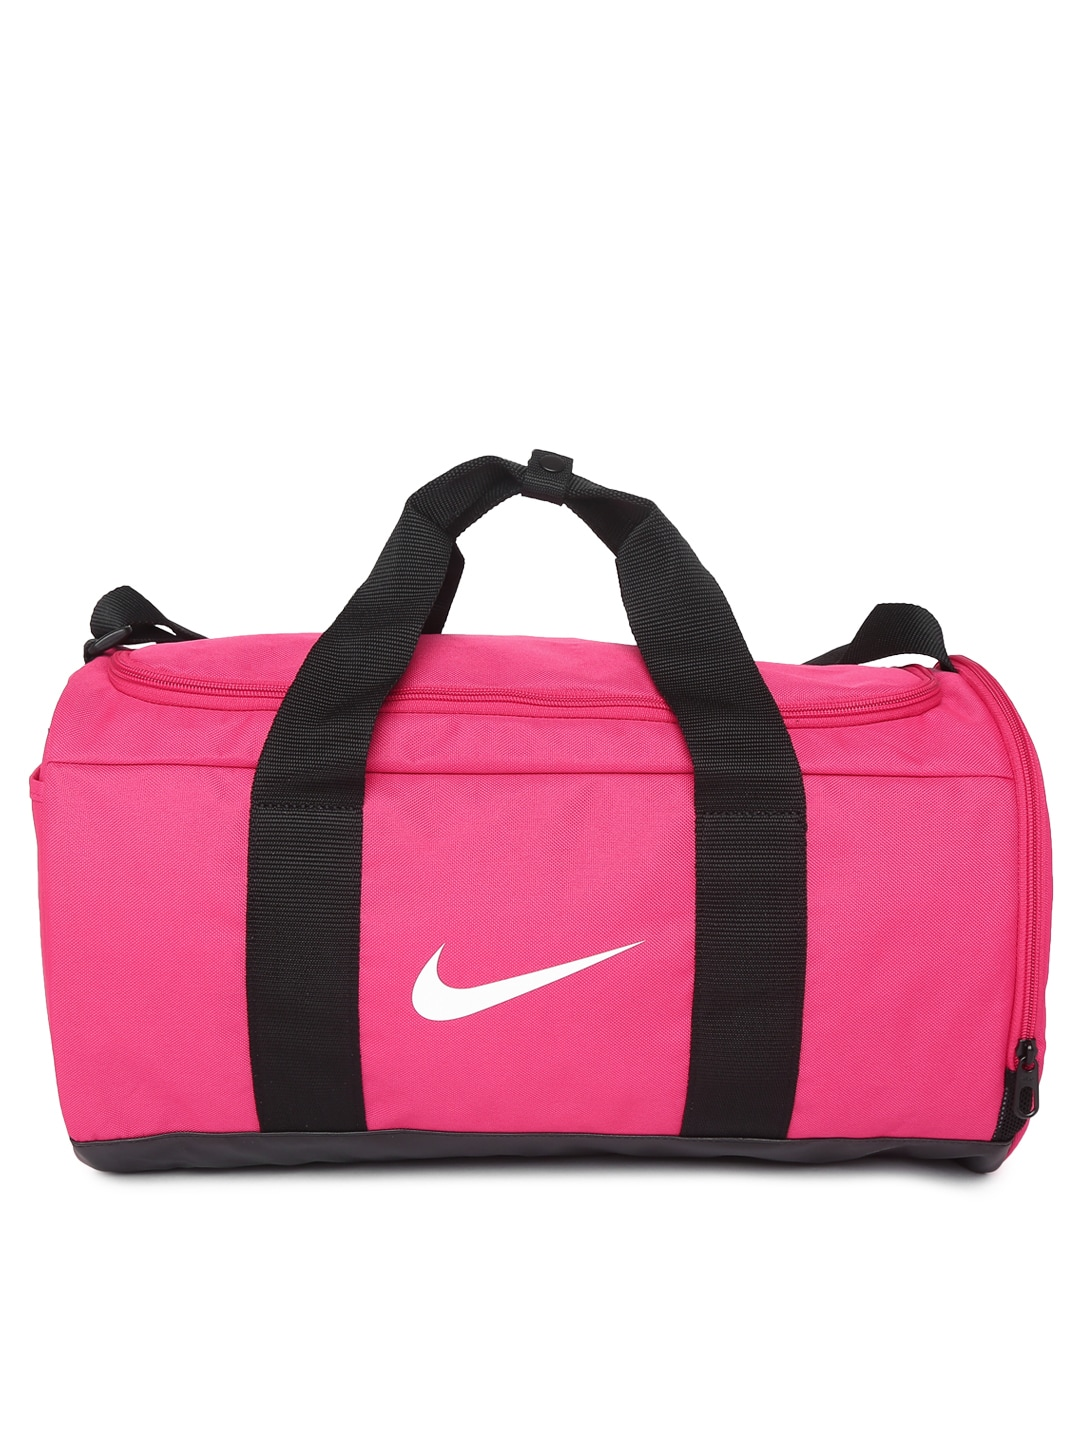 Nike Women Pink Team Duffle Bag bb6553717d452